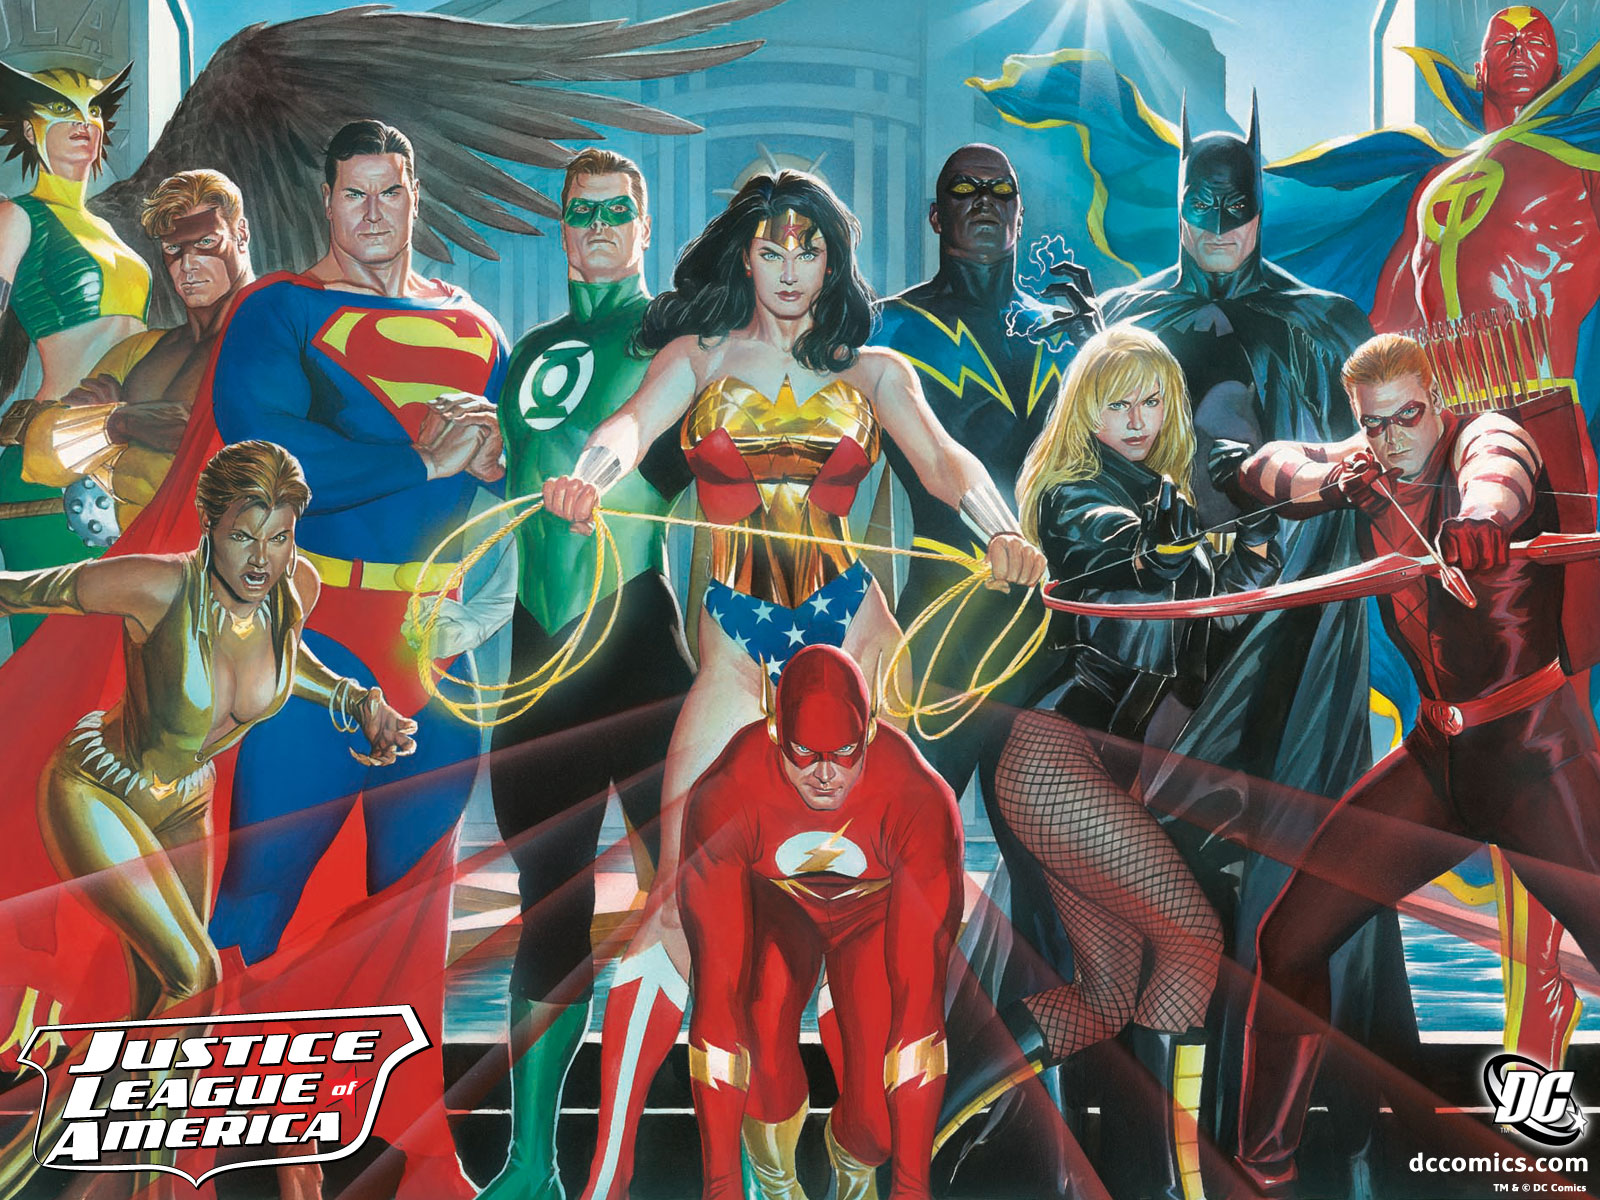 We Introduce To You The JUSTICE LEAGUE Movie 5 Core Team Members